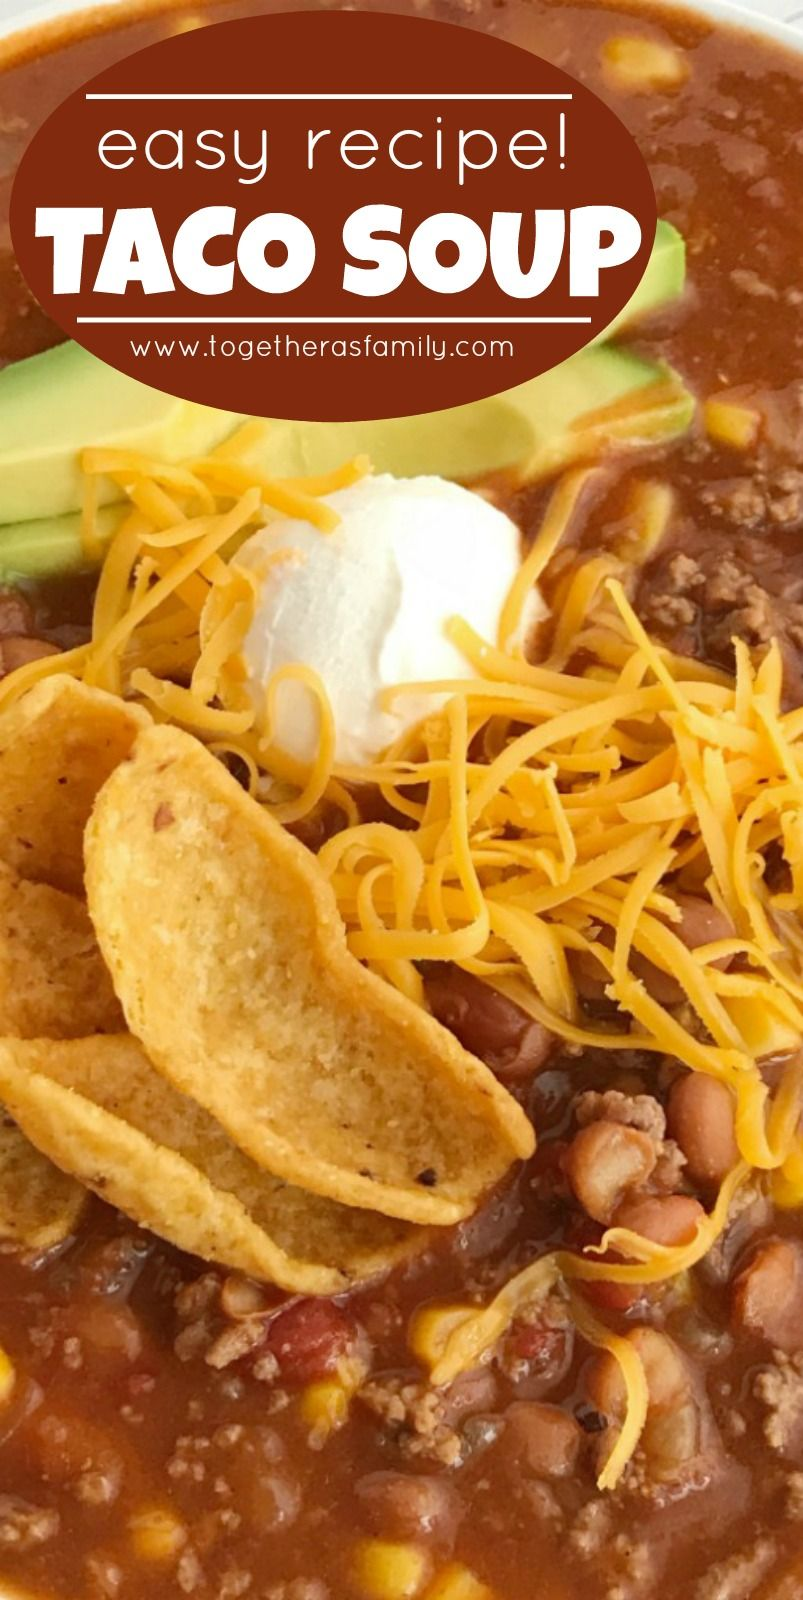 Easy Taco Soup | Together as Family